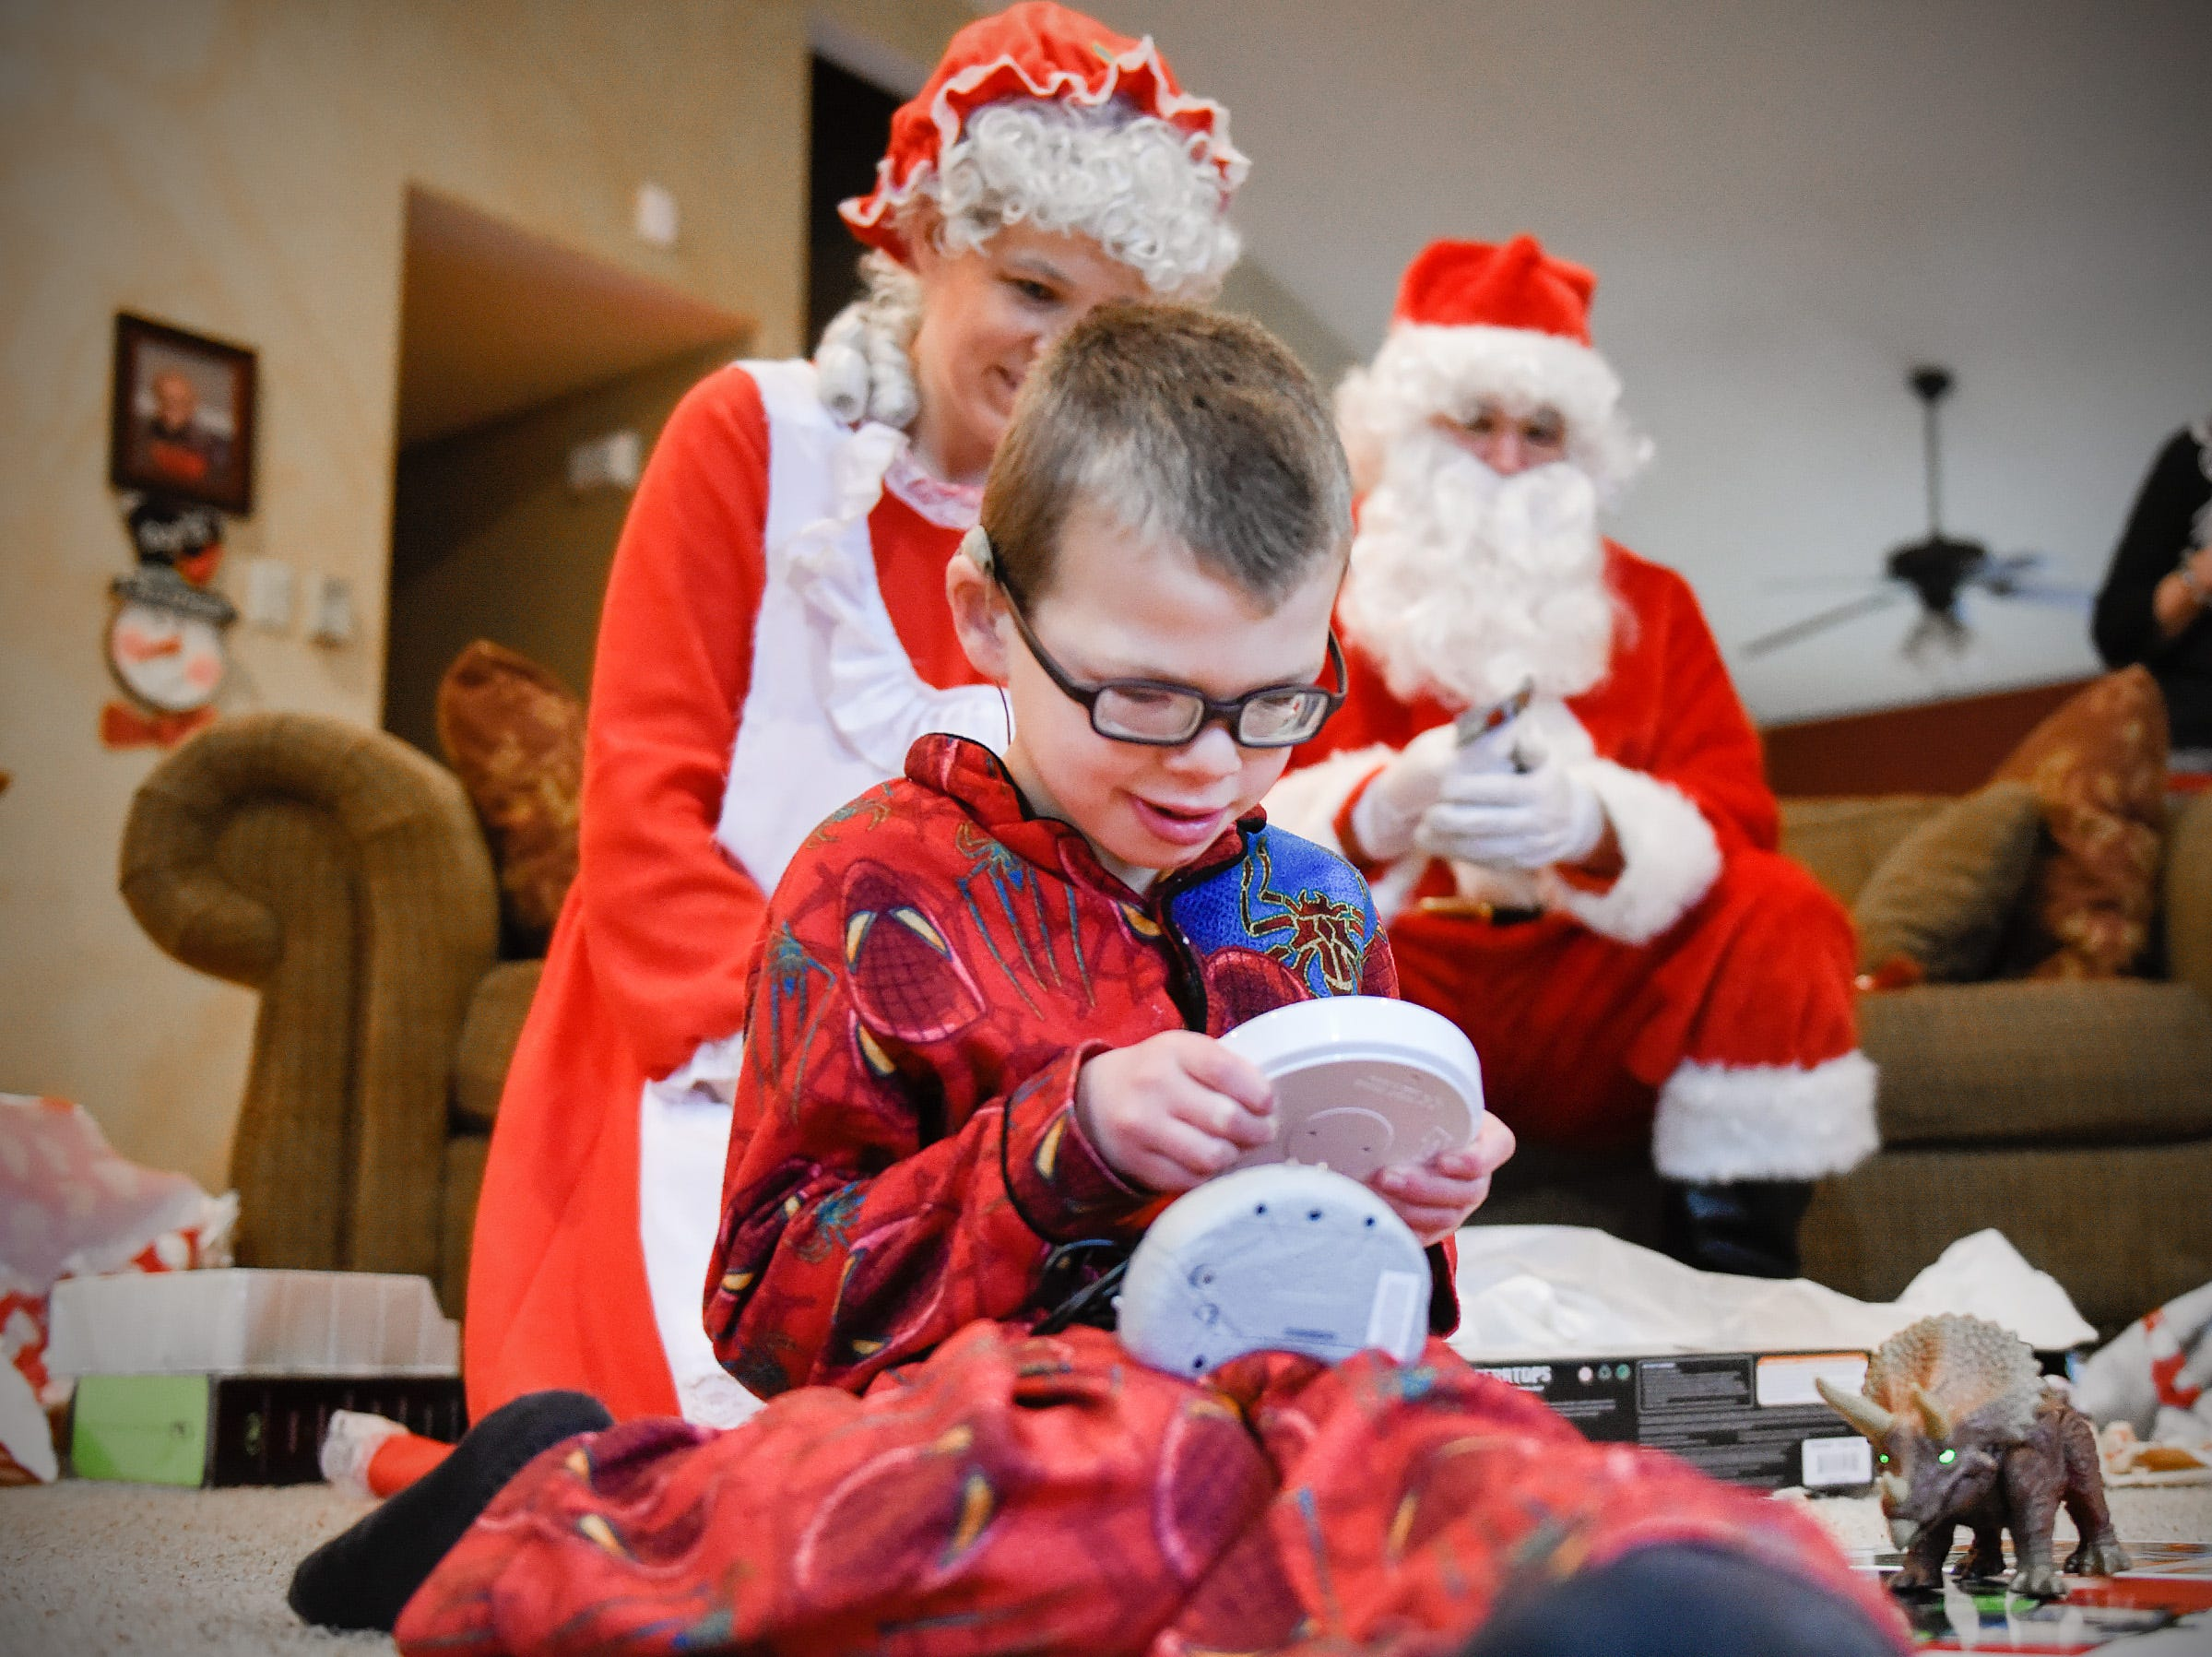 Camran Schneider, 6, plays with an adapted remote control dinosaur which was a special delivery Tuesday, Dec. 25, by Santa and Mrs. Claus to the Schneider home in Kimball.